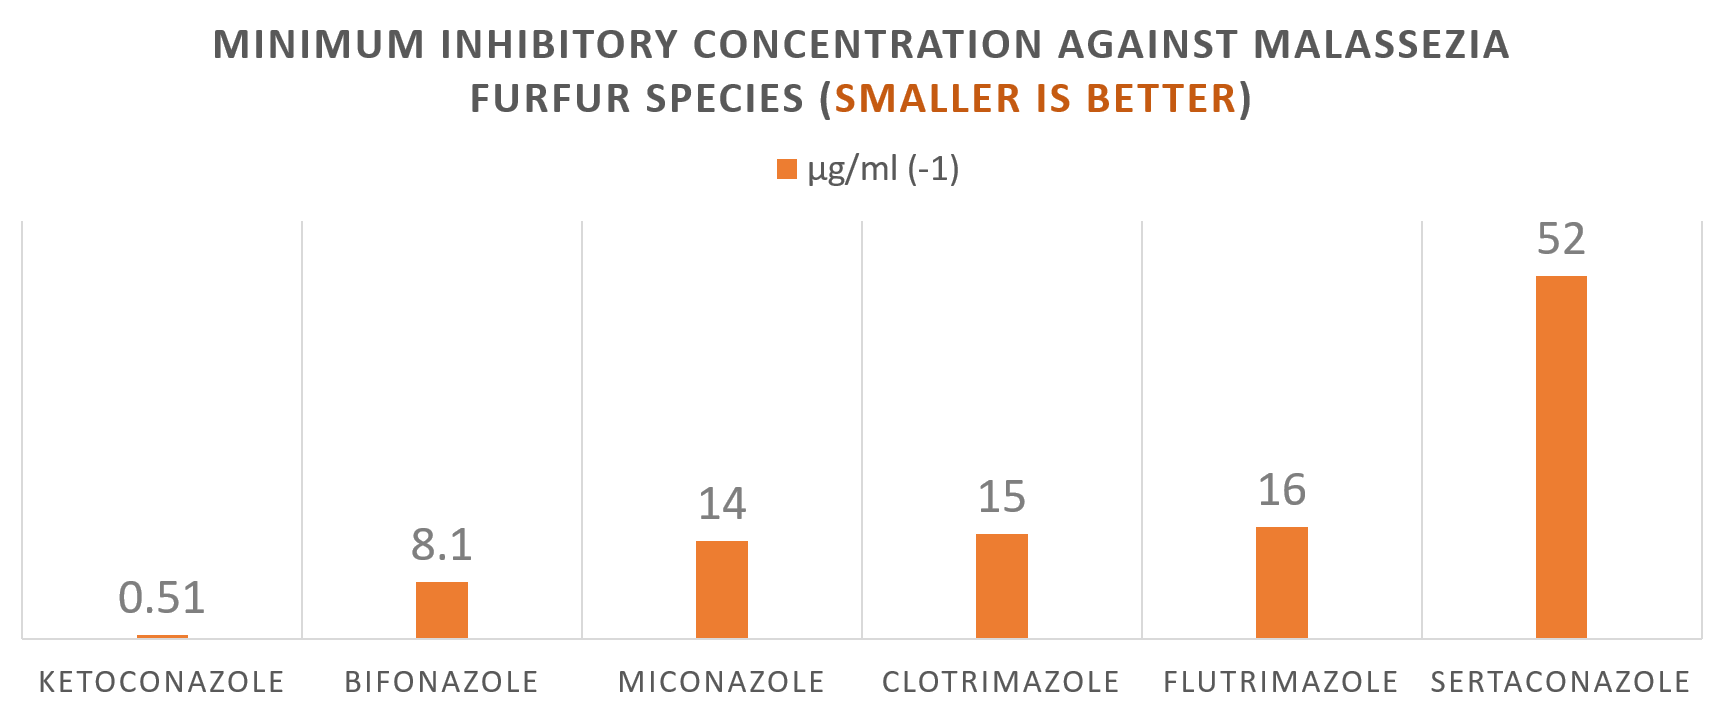 Minimum inhibitory concentration of clotrimazole compared to other azole antifungals against malassezia furfur species,